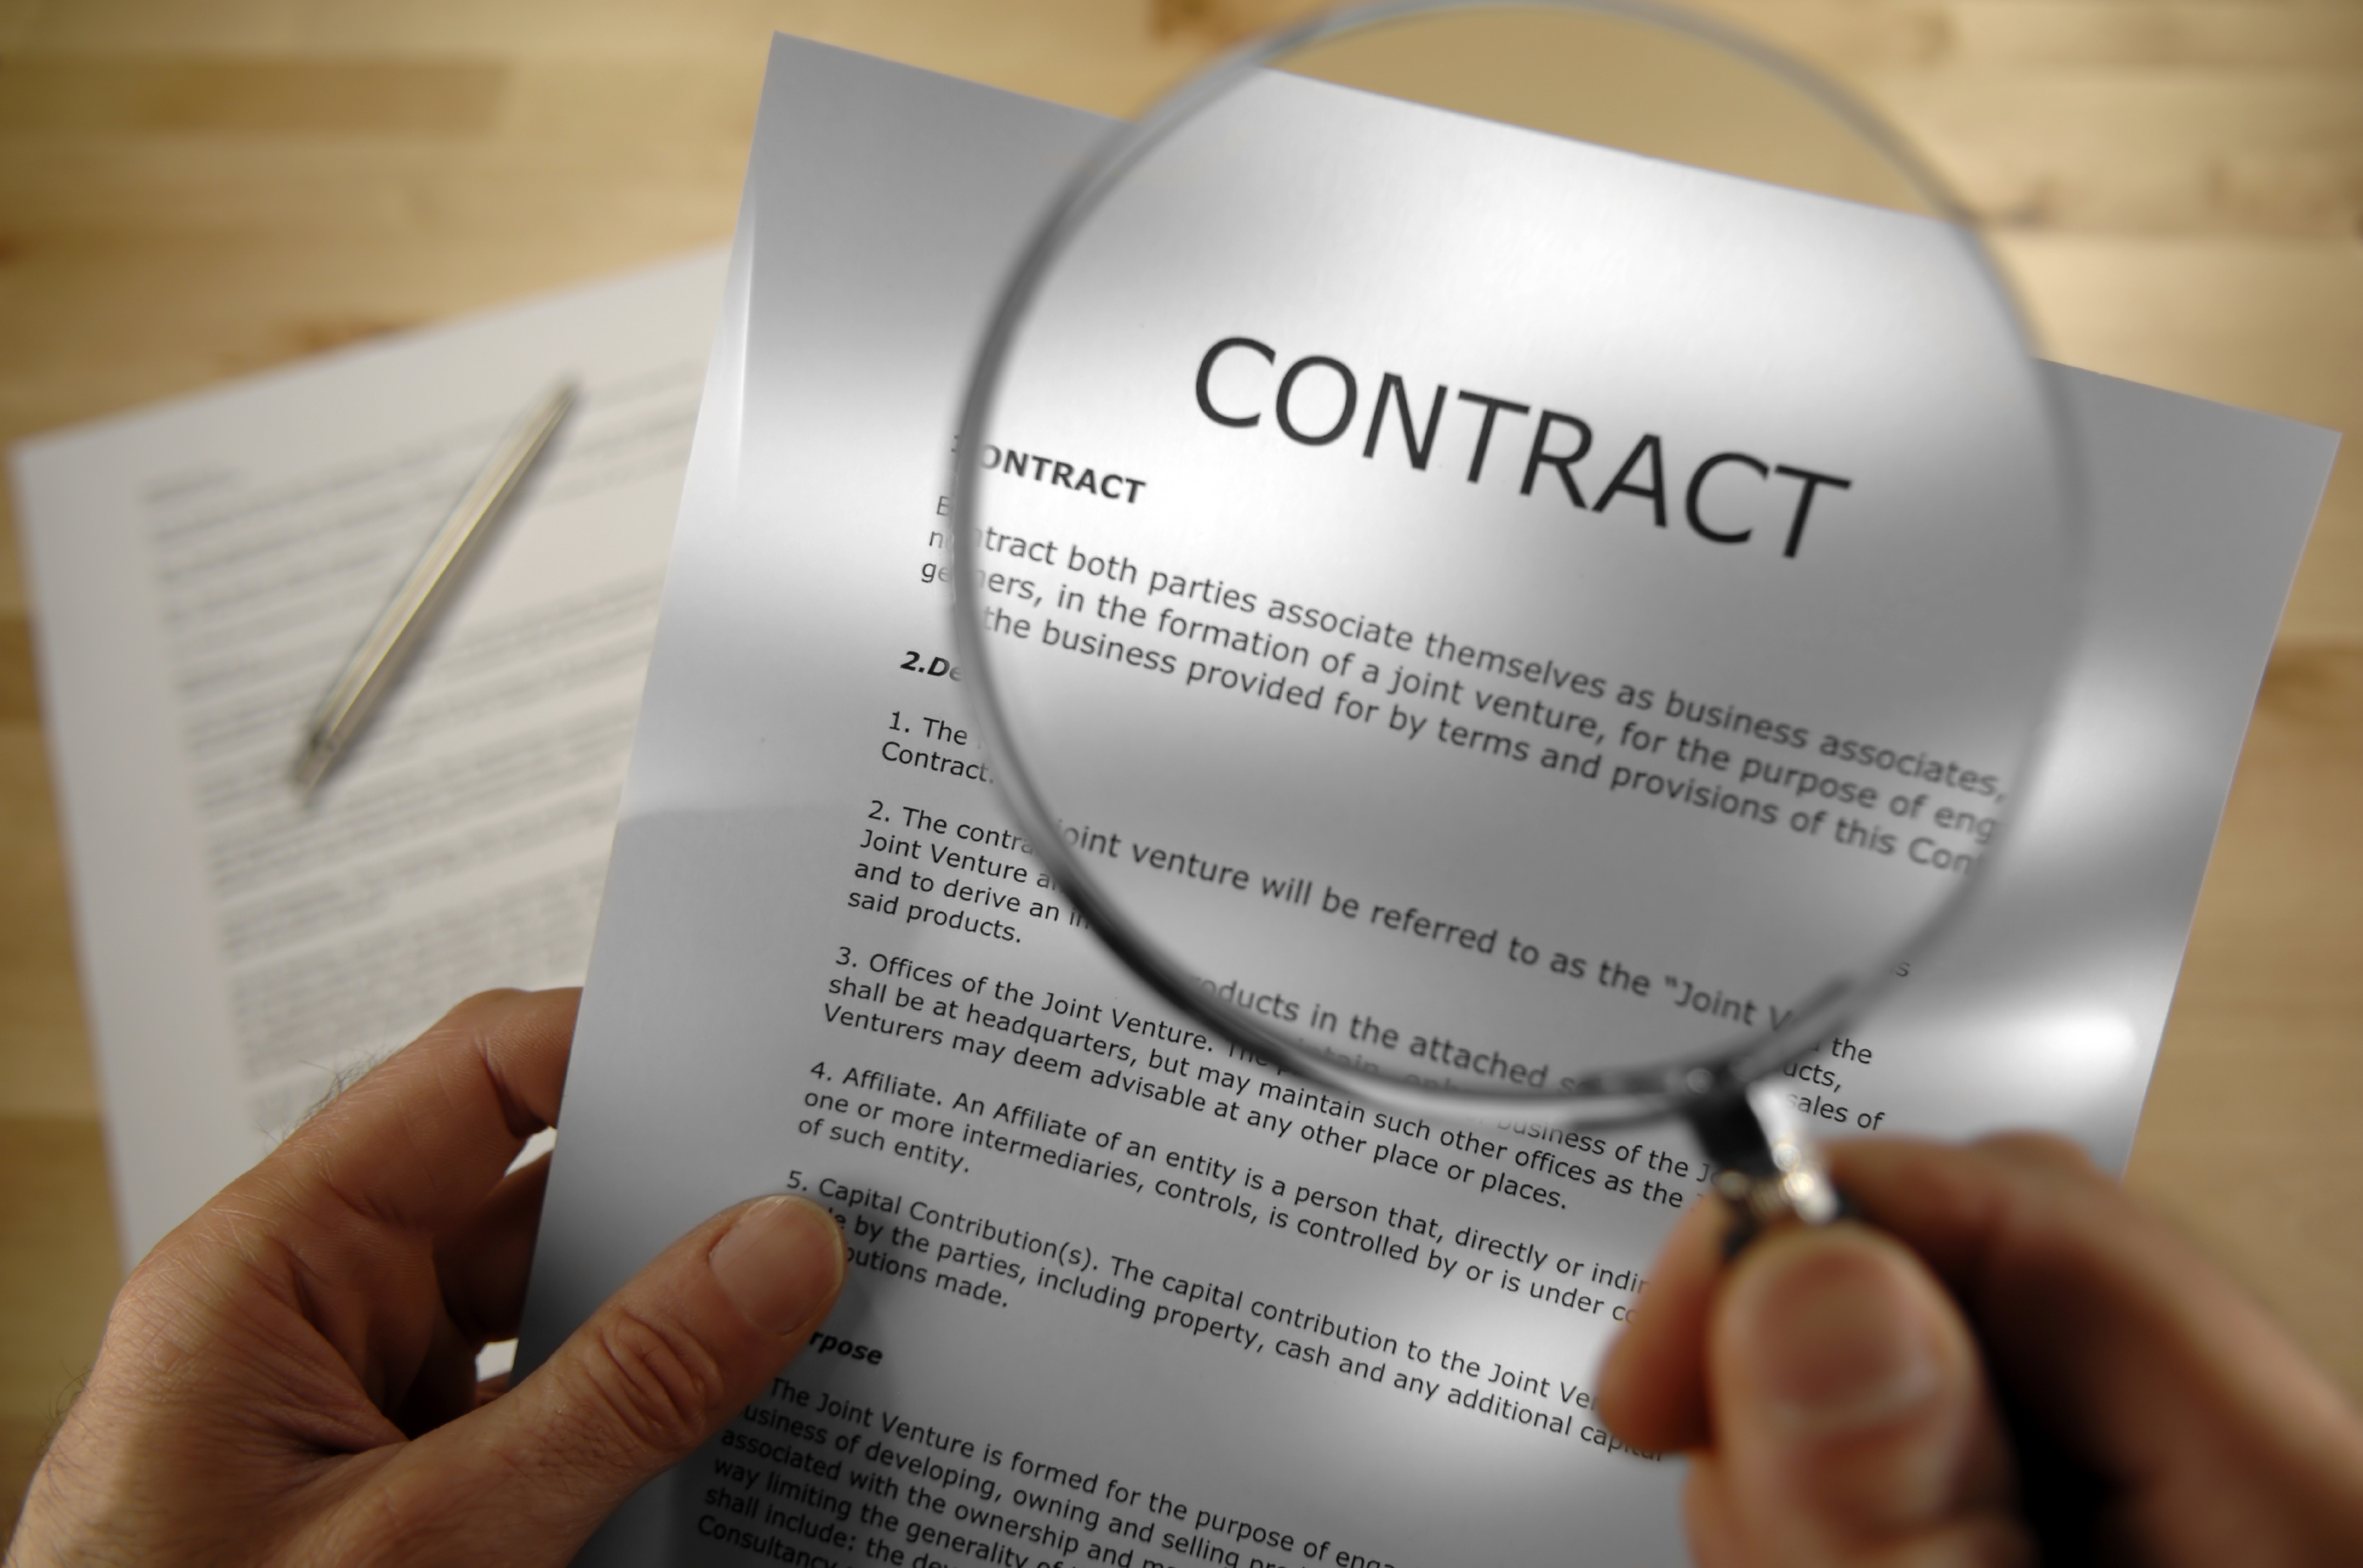 Learn Why It's Valuable to Engage an Independent Contract Auditor